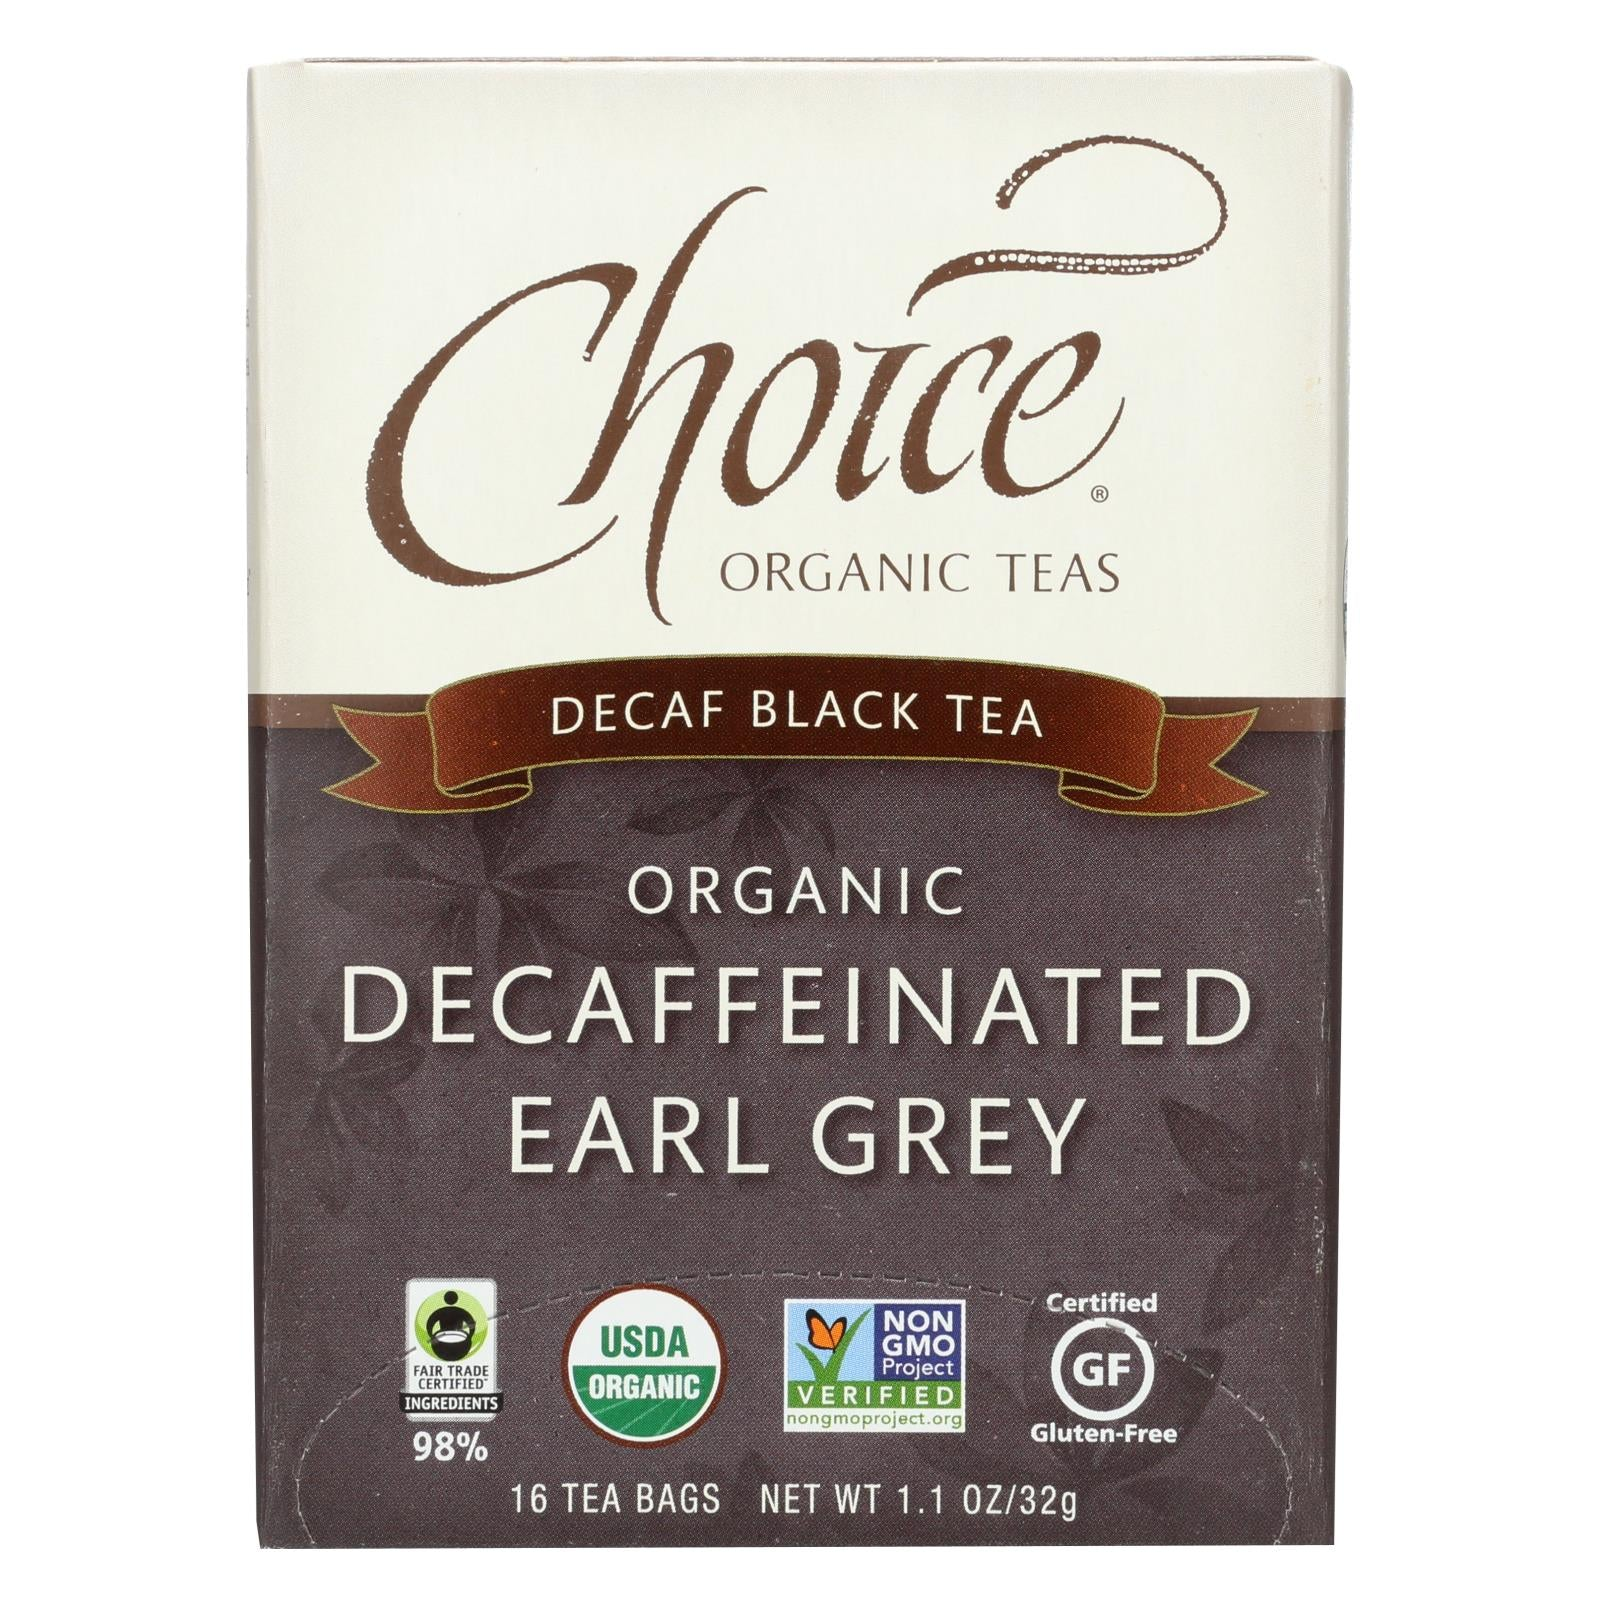 Buy Choice Organic Teas Decaffeinated Earl Grey Tea - 16 Tea Bags - Case of 6 - Black Tea from Veroeco.com